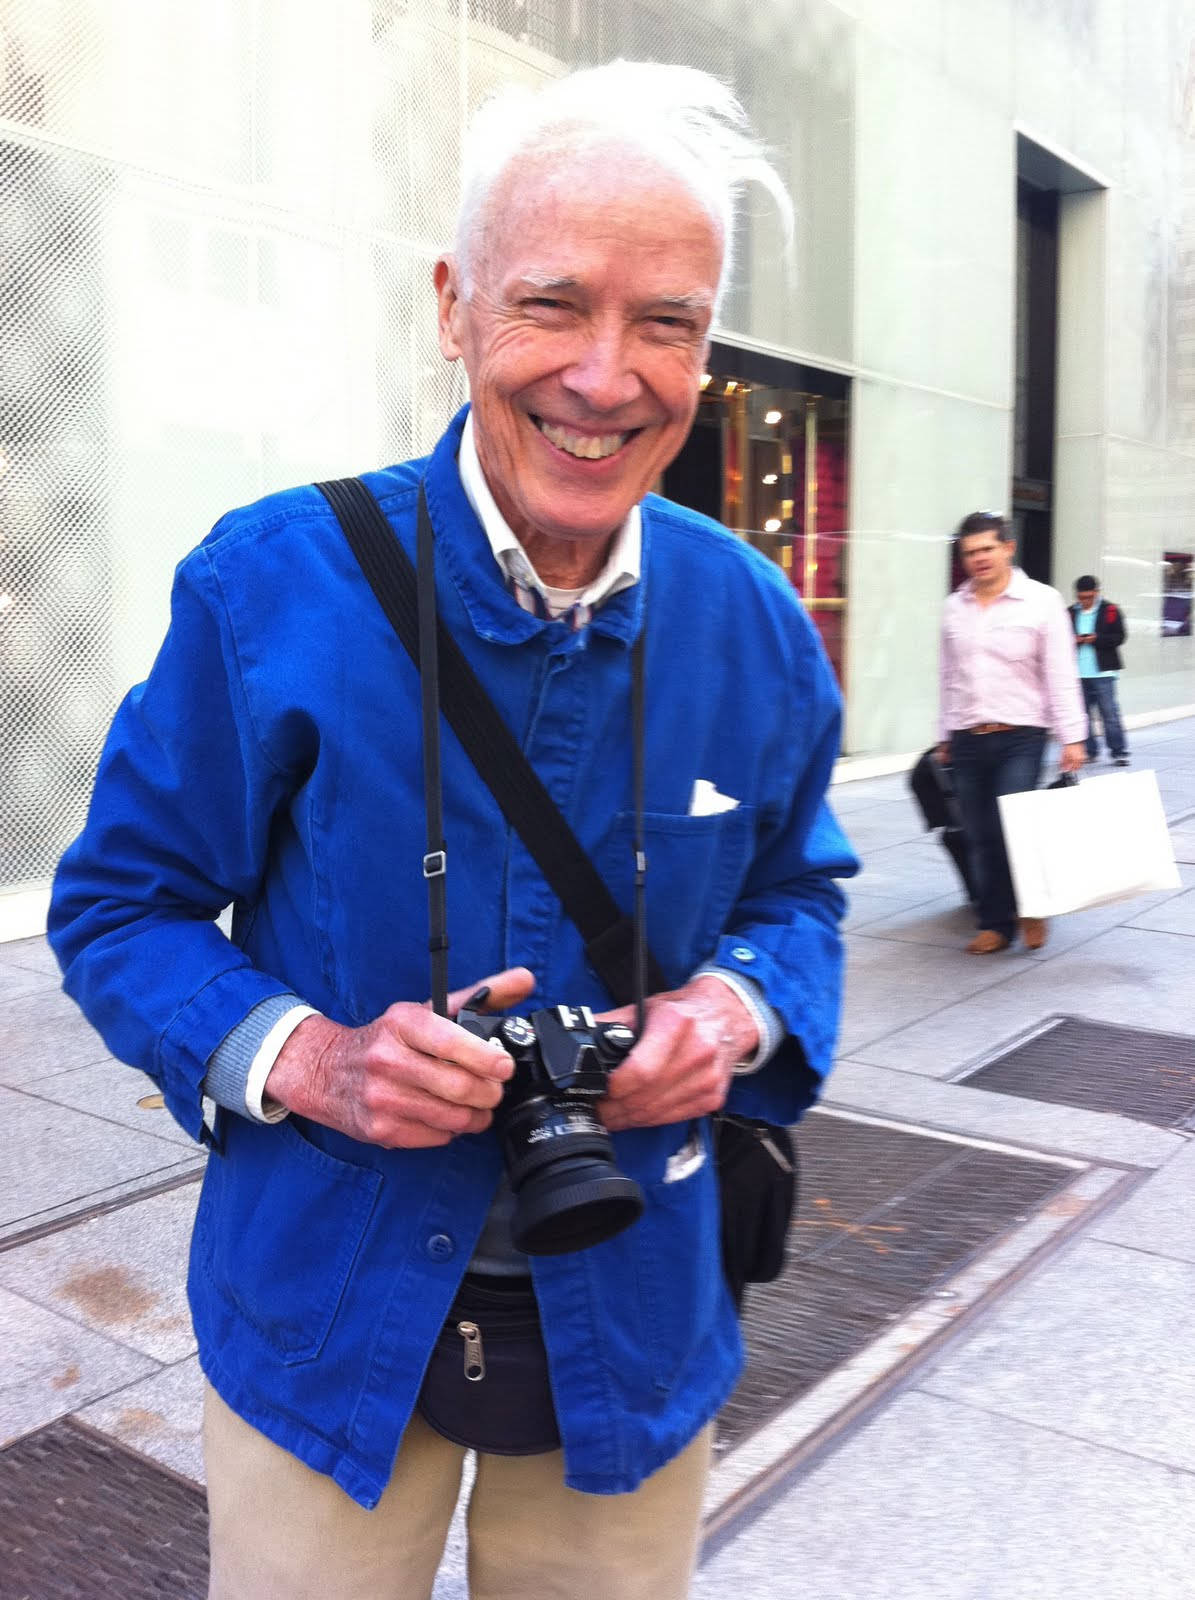 Remembering Iconic Fashion Photographer Bill Cunningham